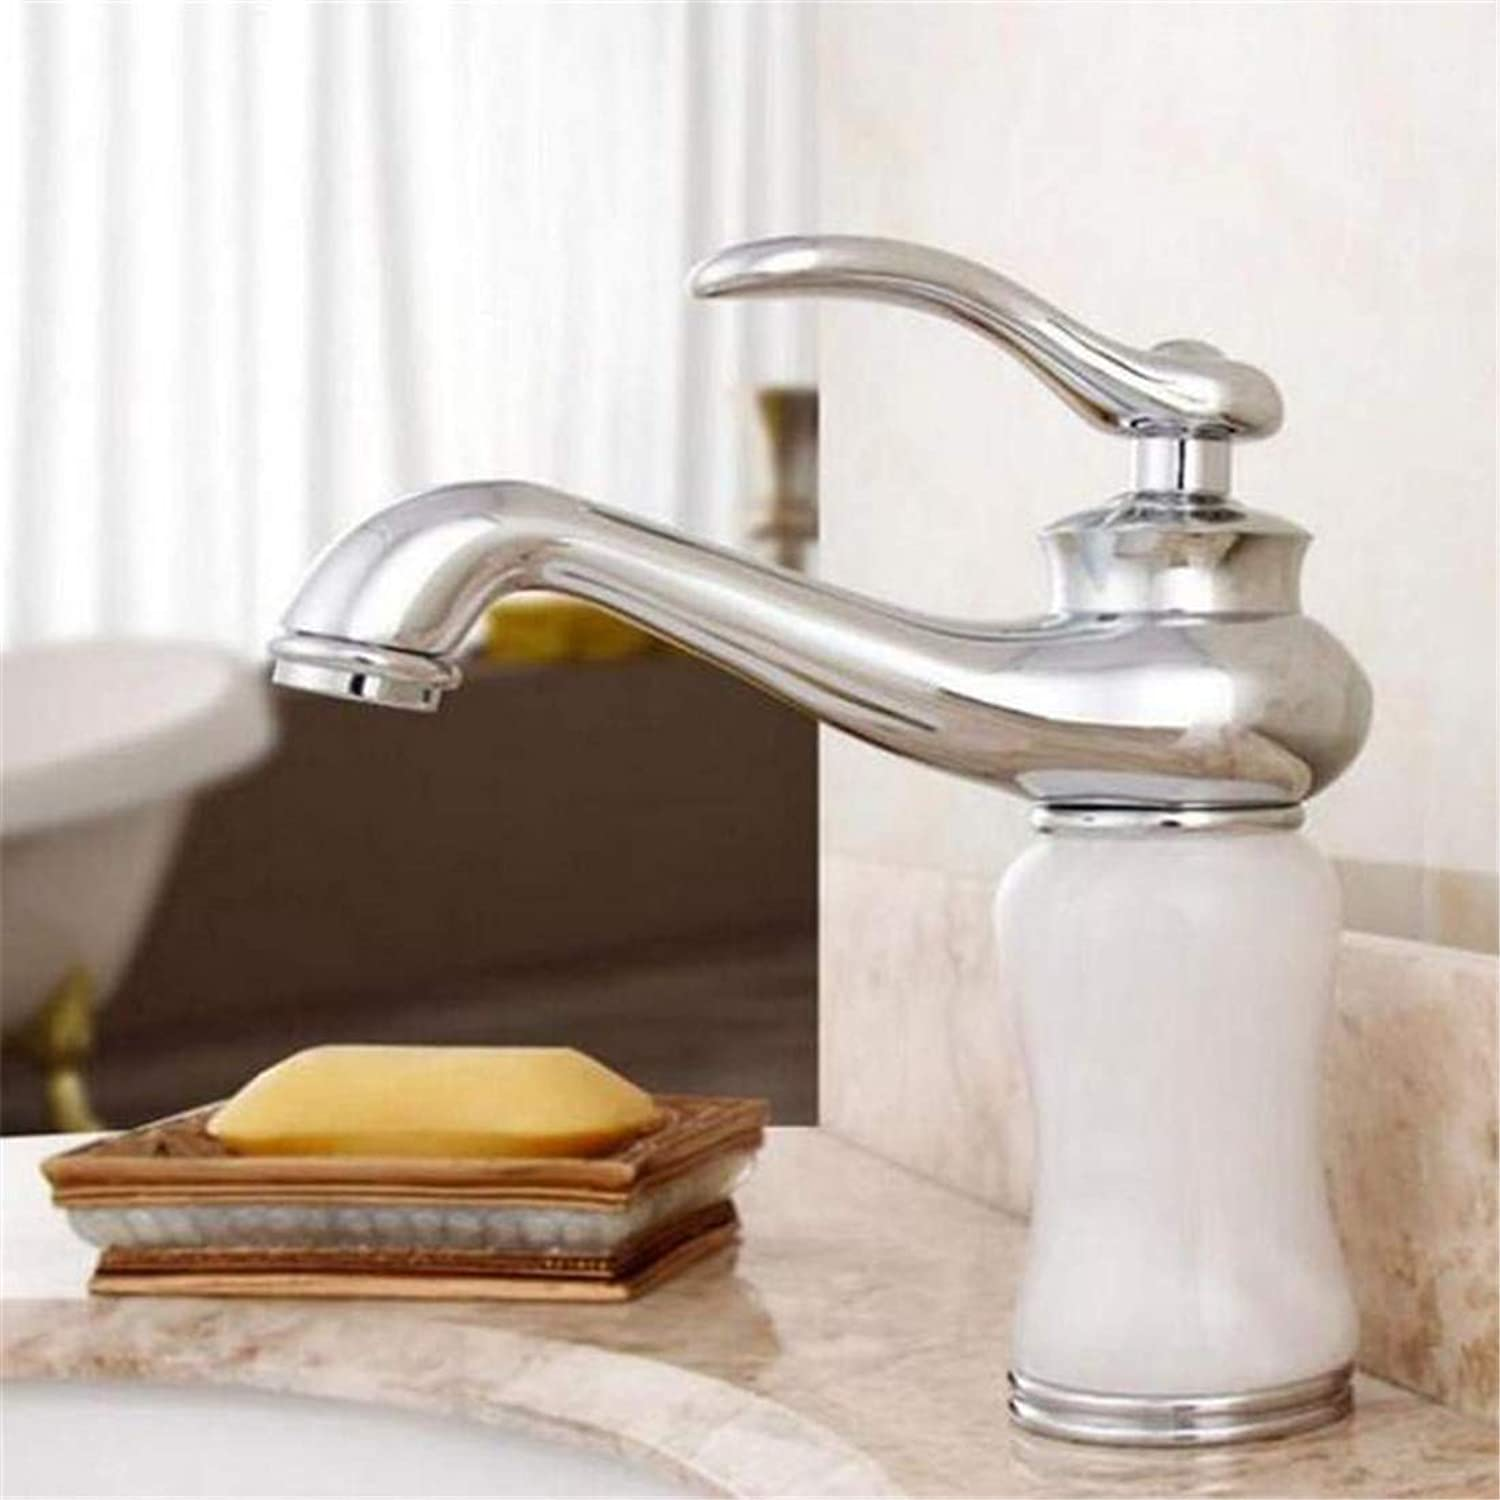 Chrome Kitchen Sink Tapfaucet Chrome Finished Bathroom Basin Faucet Luxury Sink Tap Basin Mixer High Quality Water Tap